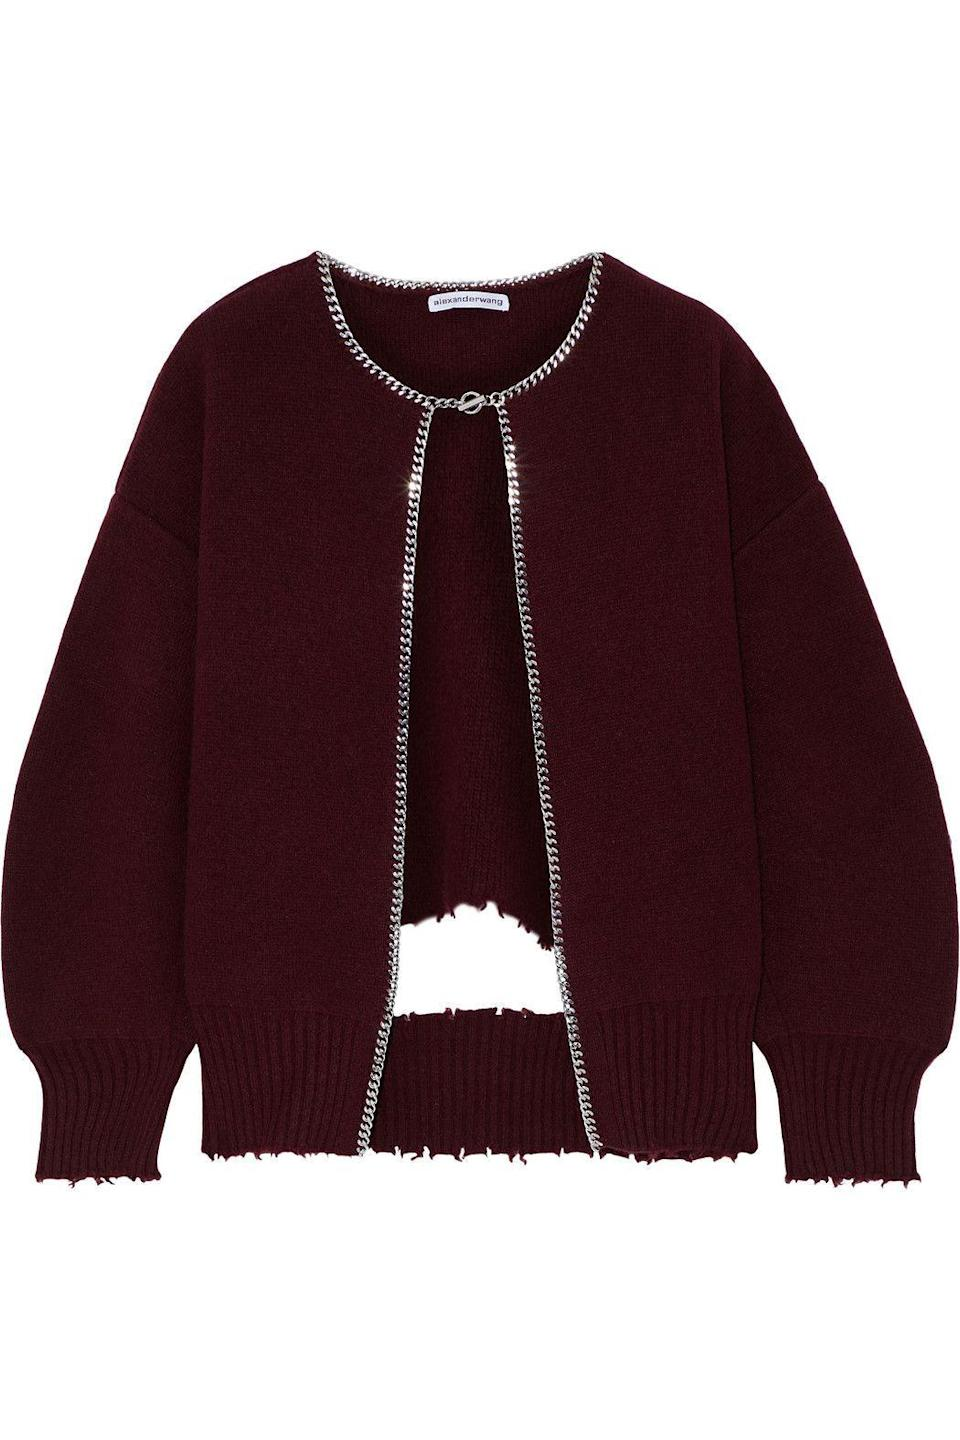 """<p><strong>ALEXANDER WANG</strong></p><p>theoutnet.com</p><p><strong>$299.00</strong></p><p><a href=""""https://go.redirectingat.com?id=74968X1596630&url=https%3A%2F%2Fwww.theoutnet.com%2Fen-us%2Fshop%2Fproduct%2Falexander-wang%2Fjackets%2Fsmart-jackets%2Fdistressed-chain-trimmed-wool-blend-cardigan%2F2204324140848602&sref=https%3A%2F%2Fwww.redbookmag.com%2Ffashion%2Fg34807151%2Fthe-outnets-black-friday-sale-2020%2F"""" rel=""""nofollow noopener"""" target=""""_blank"""" data-ylk=""""slk:Shop Now"""" class=""""link rapid-noclick-resp"""">Shop Now</a></p><p>This is not your grandmonther's cardigan. </p>"""